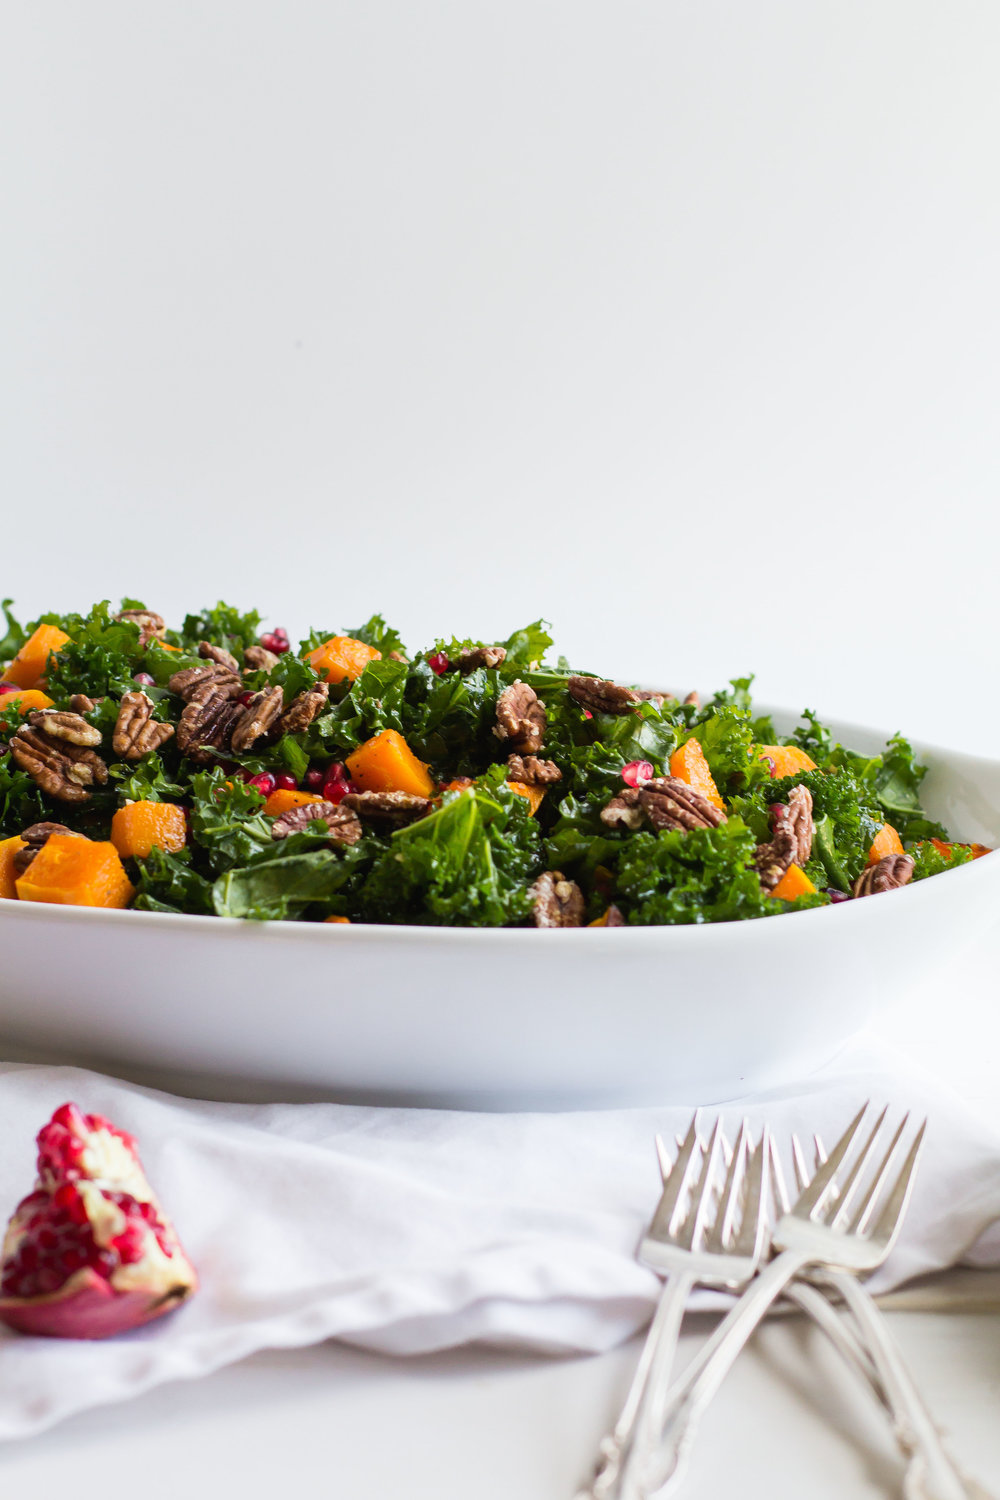 Roasted Squash + Kale Salad with Maple-Dijon Vinaigrette-6.jpg